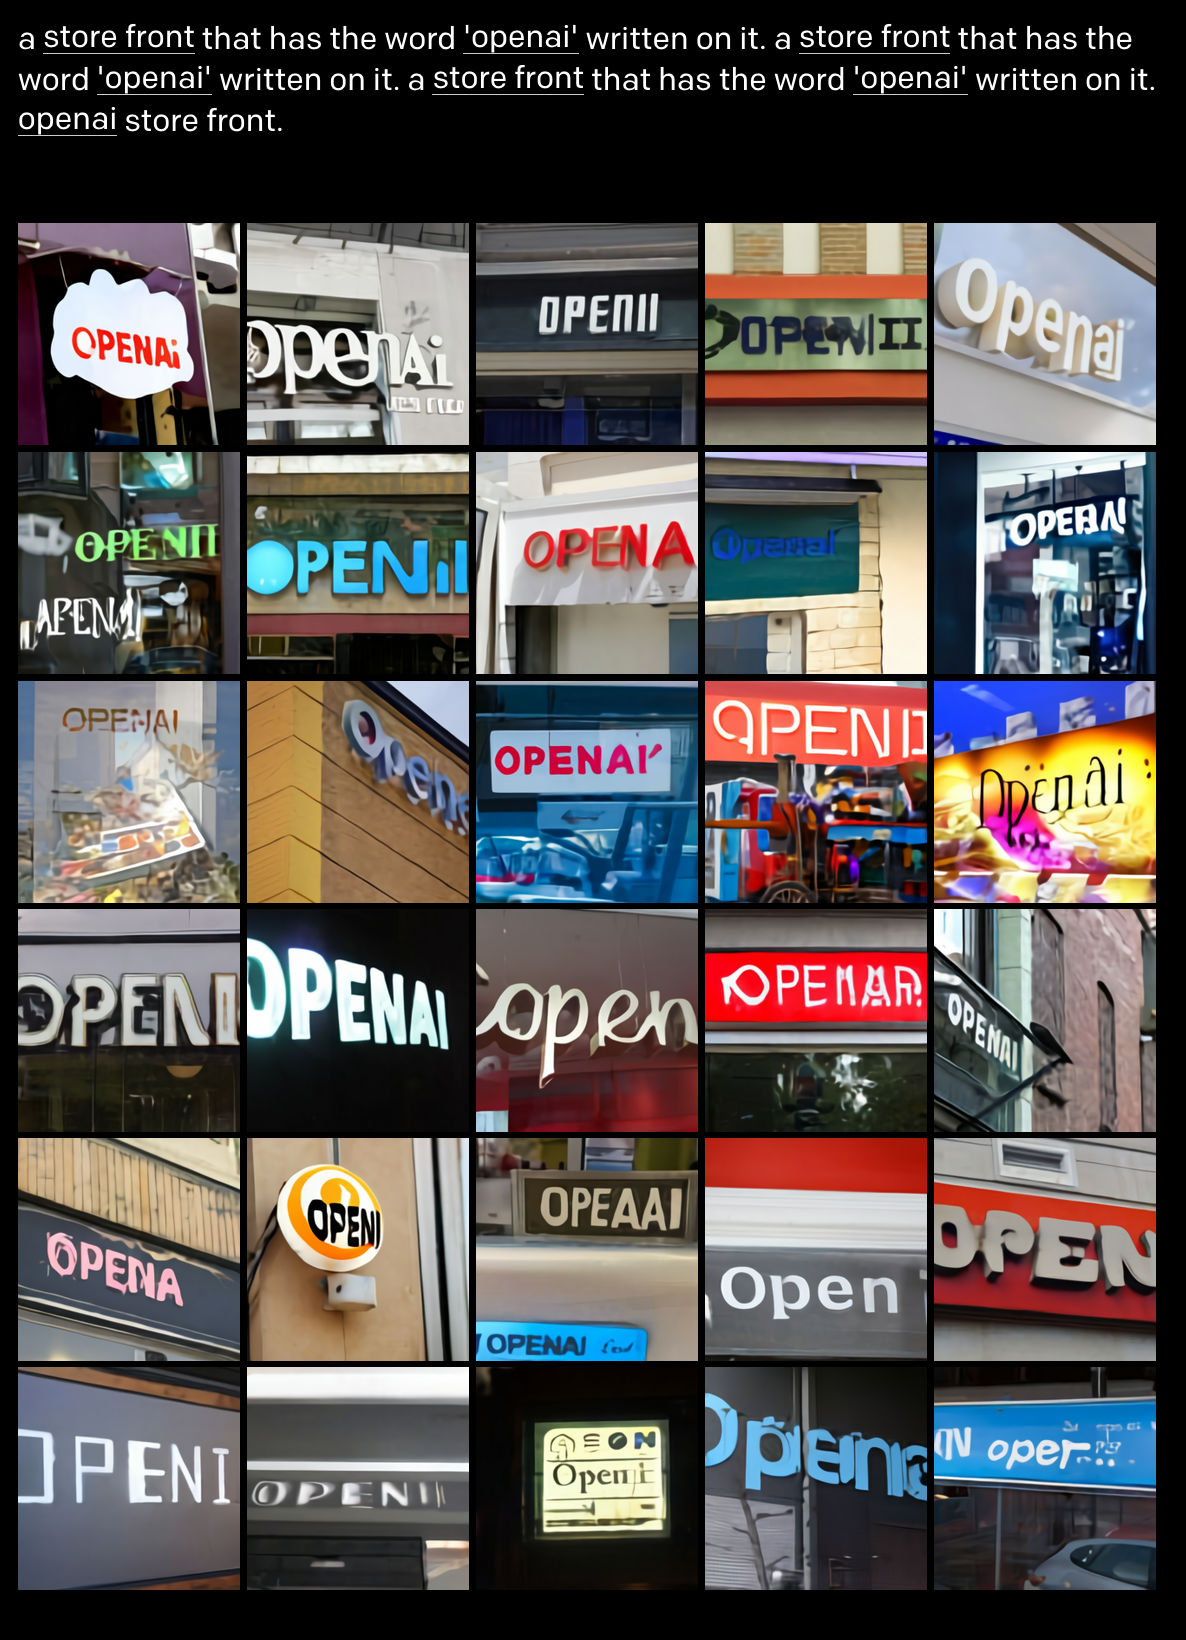 a store front with openai written on it